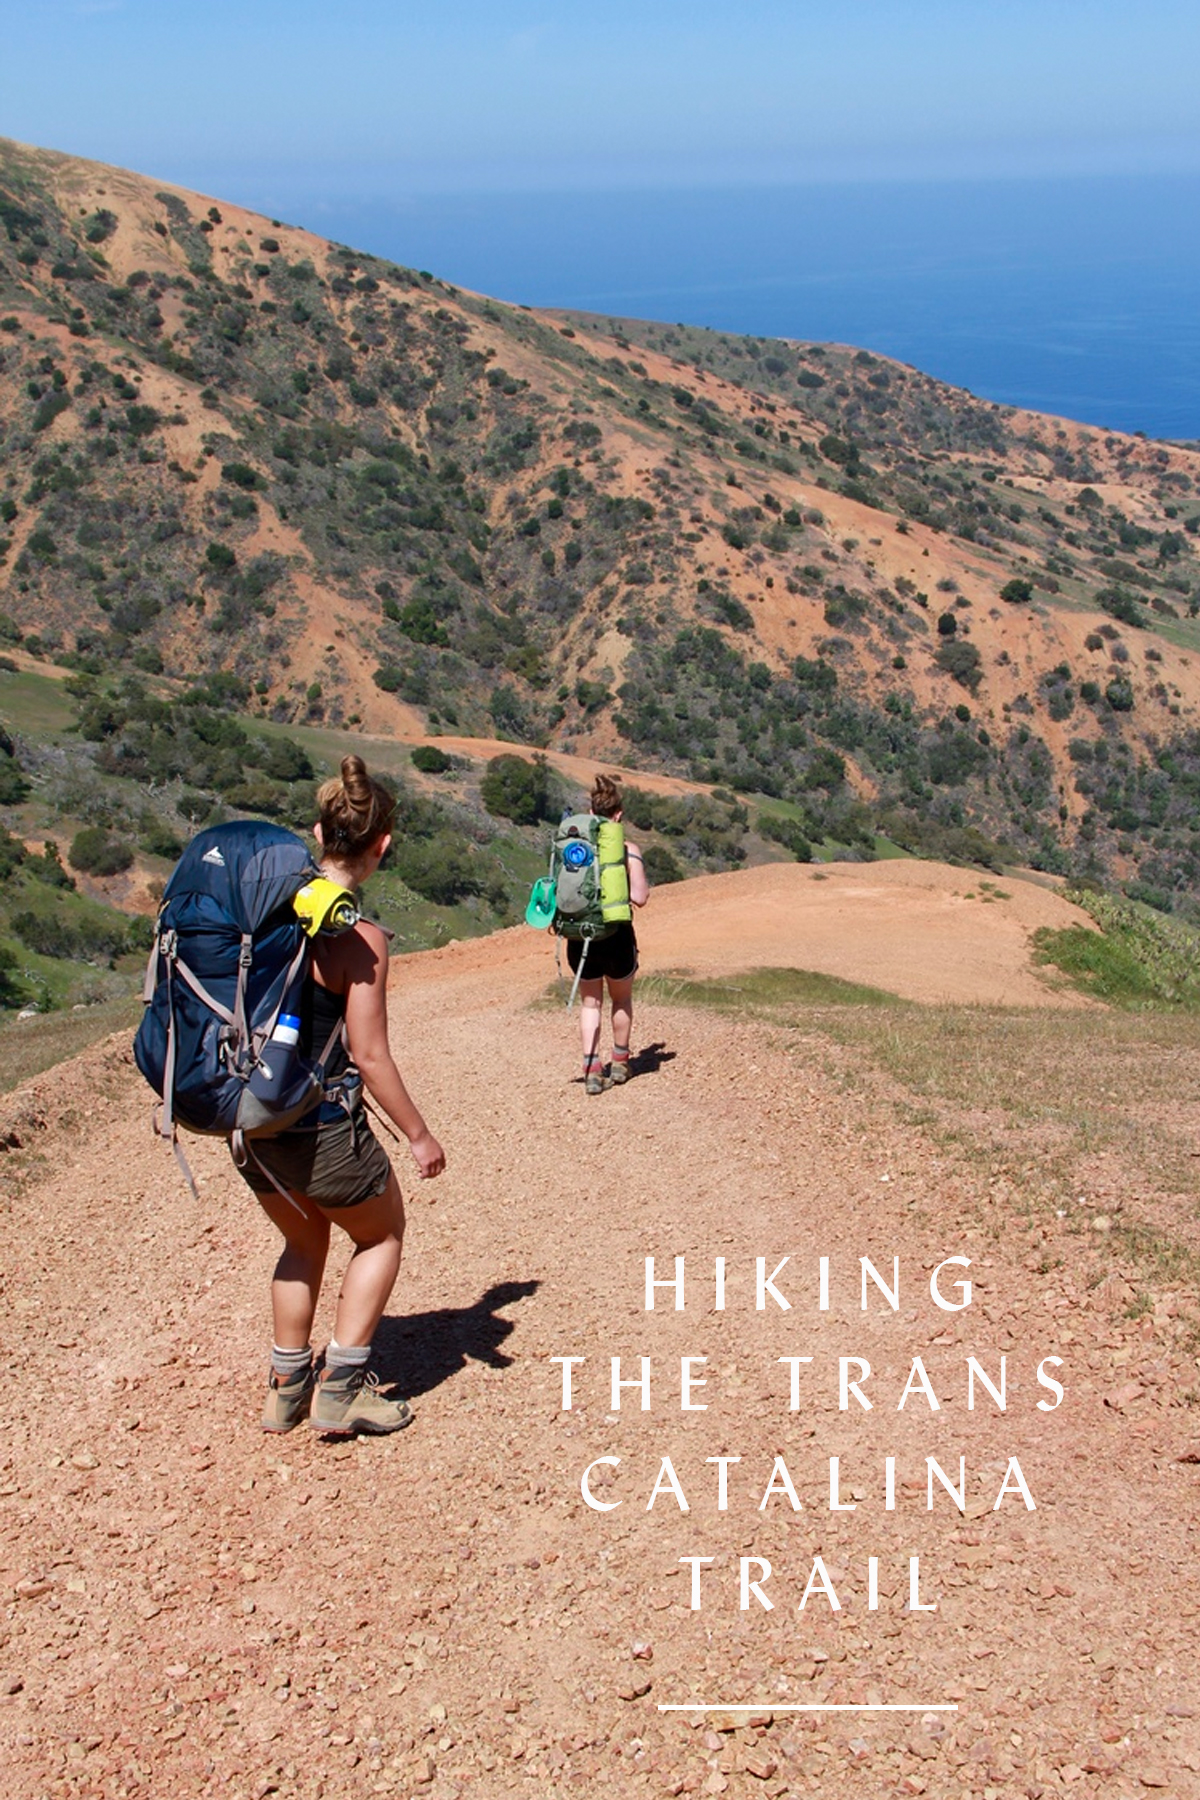 Hiking the Trans Catalina Trail, a Cadence of Pain